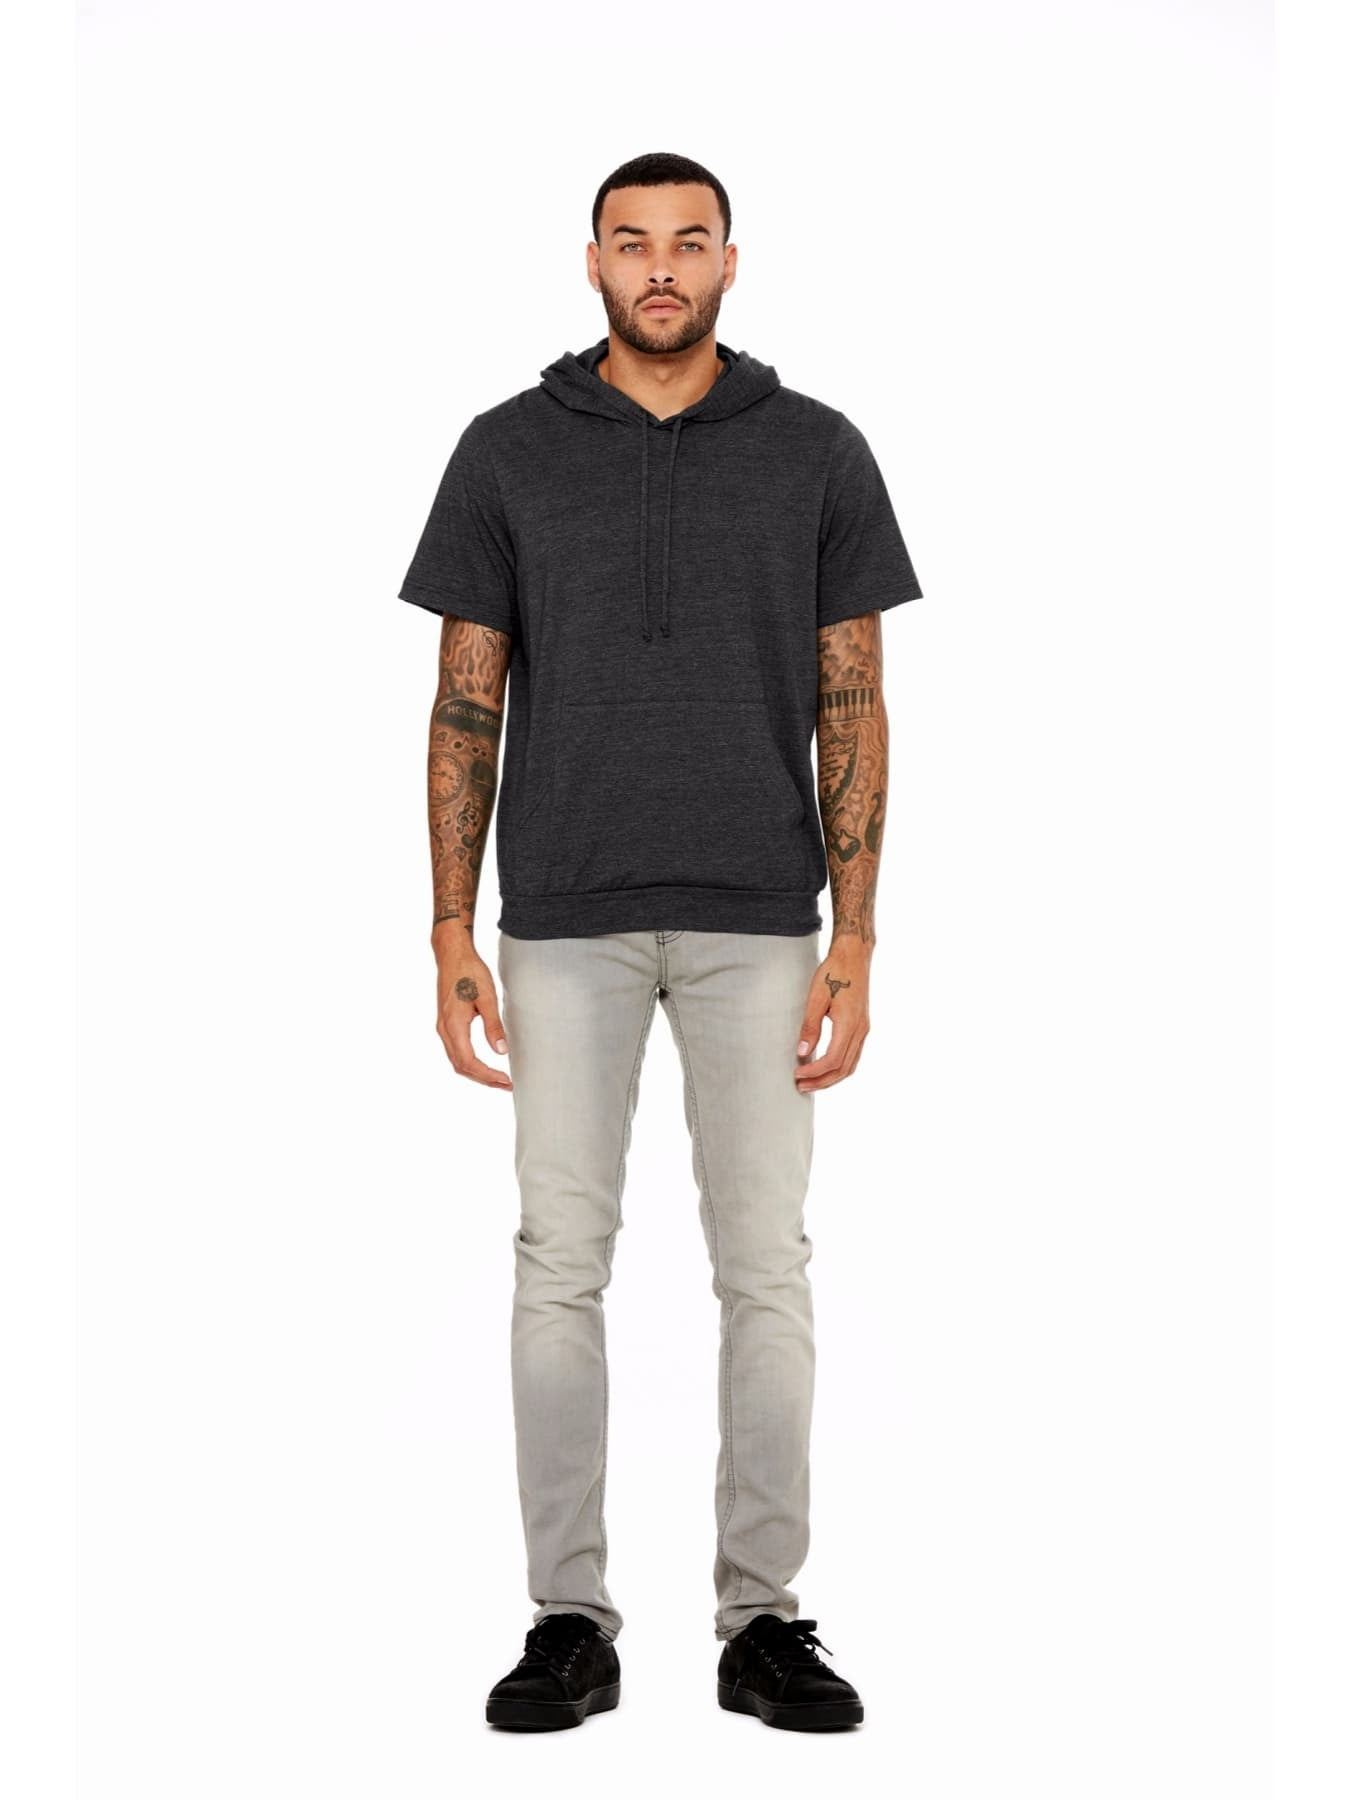 Men's Jersey Short Sleeve Hoodie — Shopping for a Change